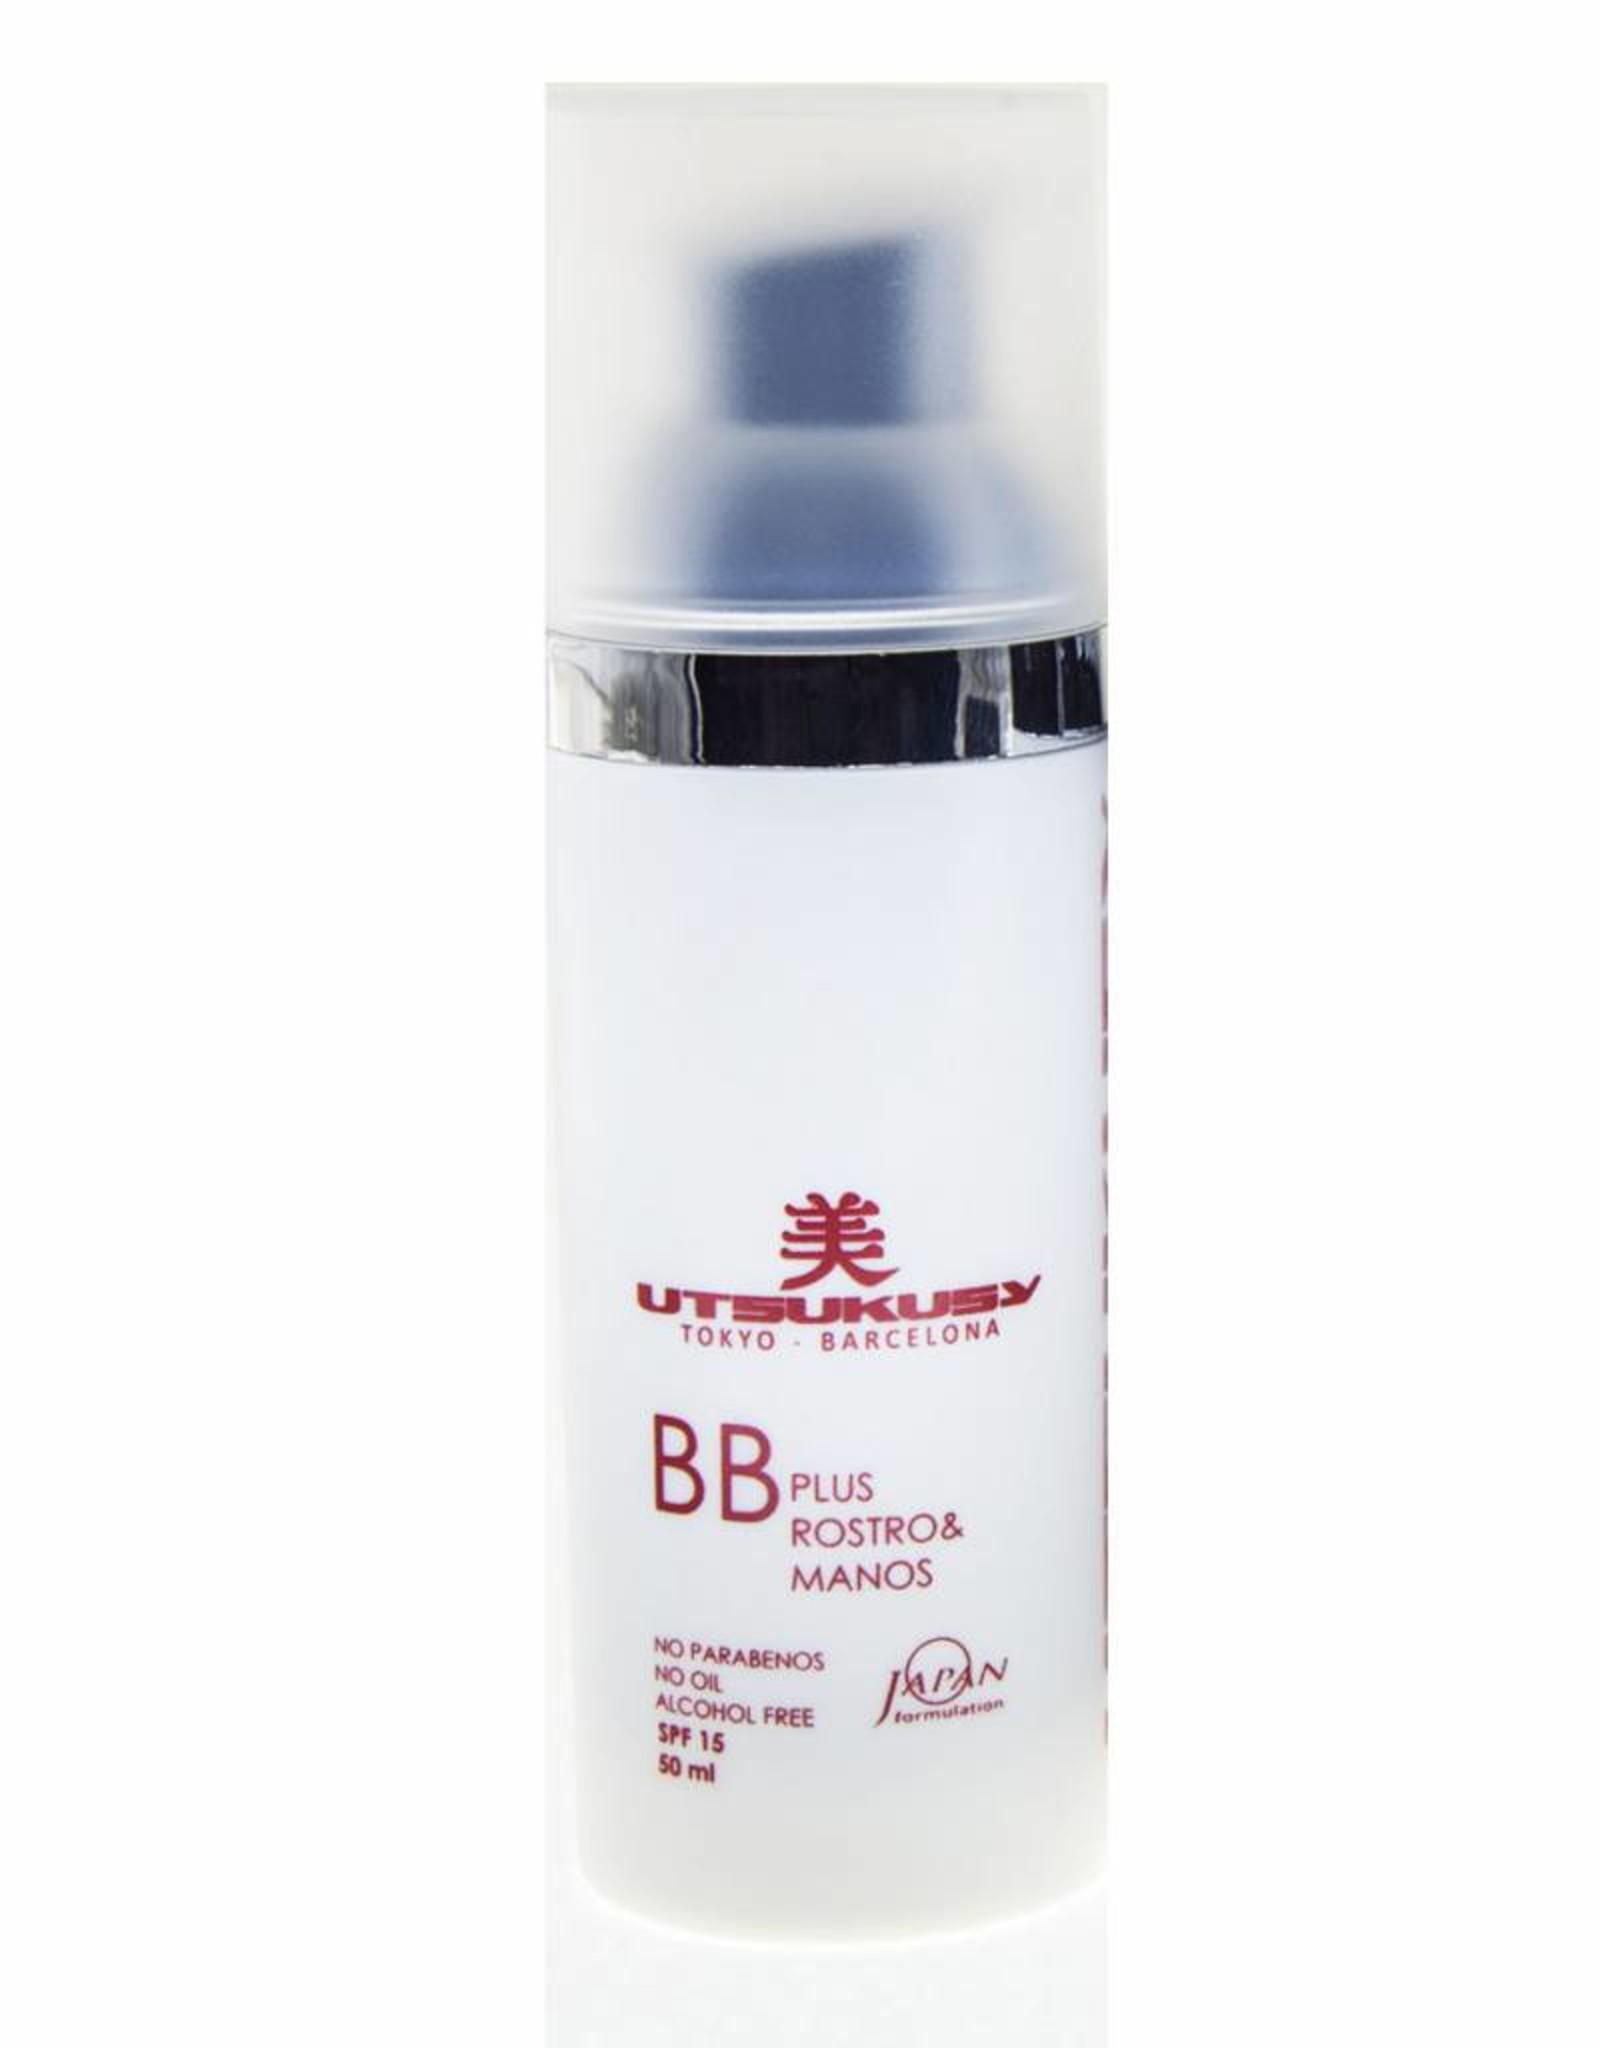 Utsukusy BB Plus cream